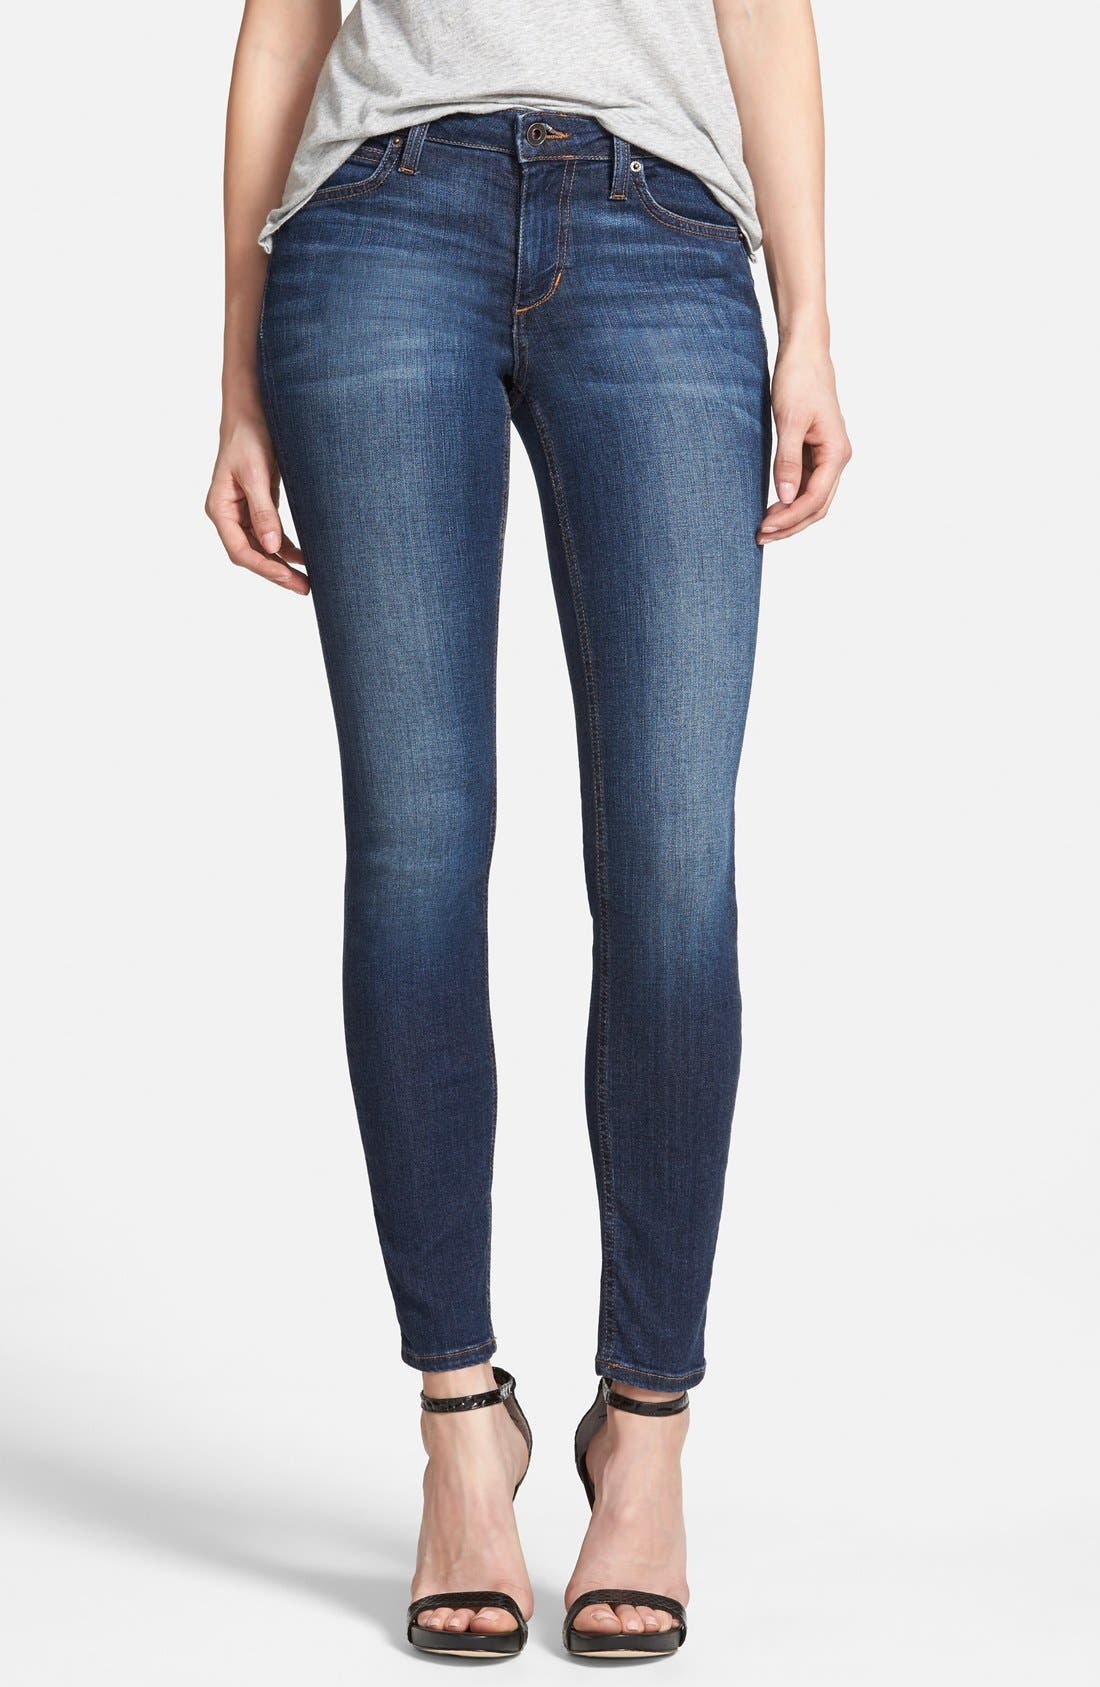 Alternate Image 1 Selected - Joe's 'Icon' Ankle Skinny Jeans (Sophia)